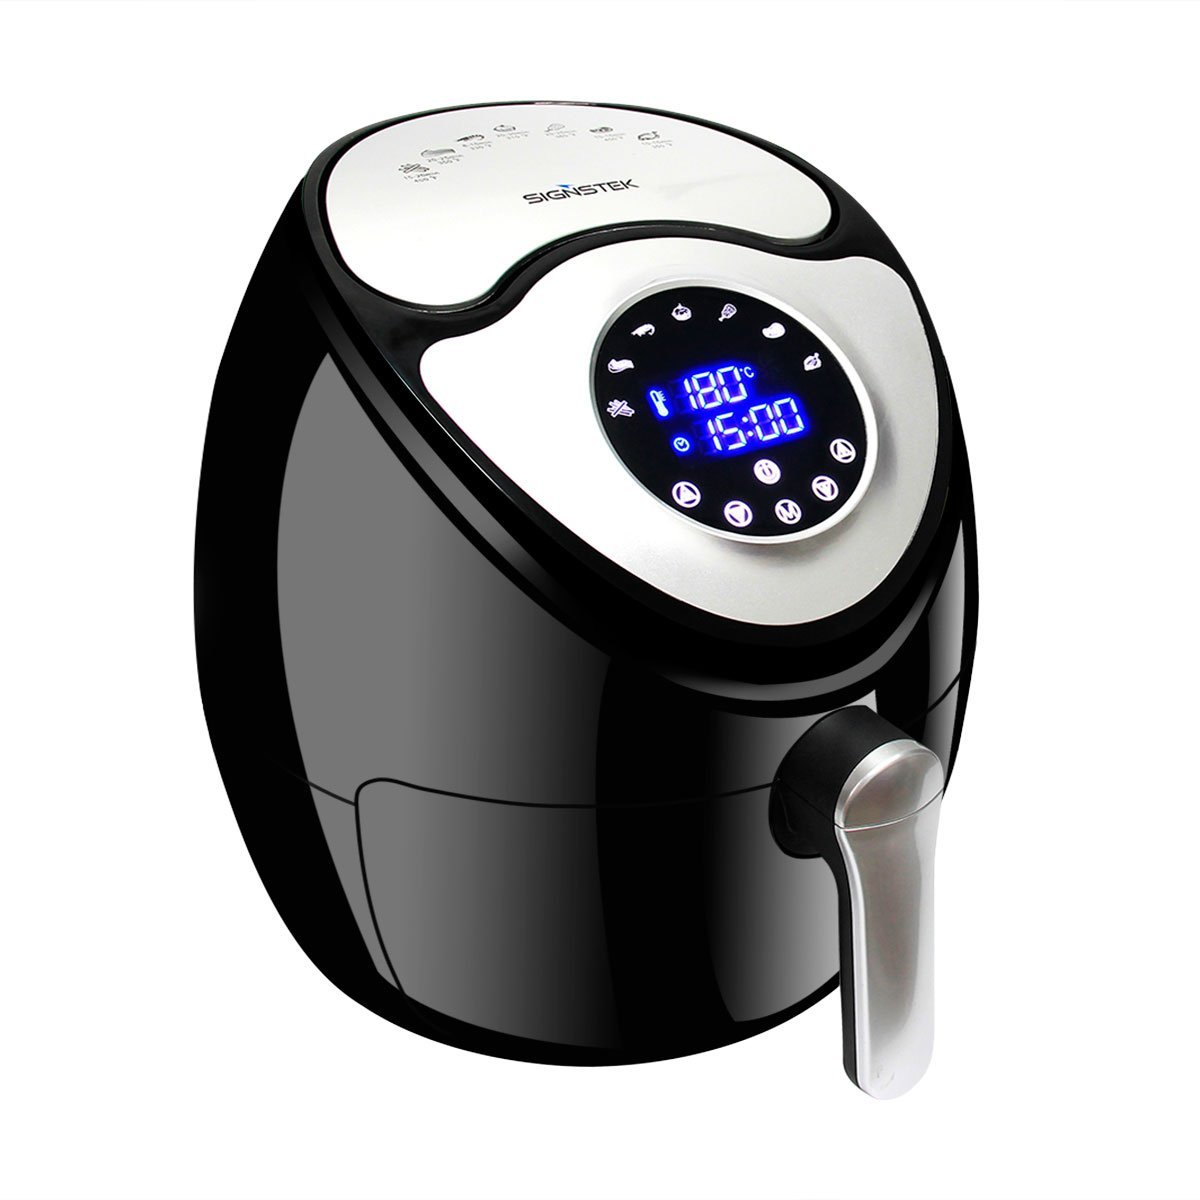 Signstek Large Power Air Fryer with Digital Touch Screen Control for Low Fat Oil Health Food with Timer & Temperature Controls, Comes with Recipes and Oil Brush(5.9QT)